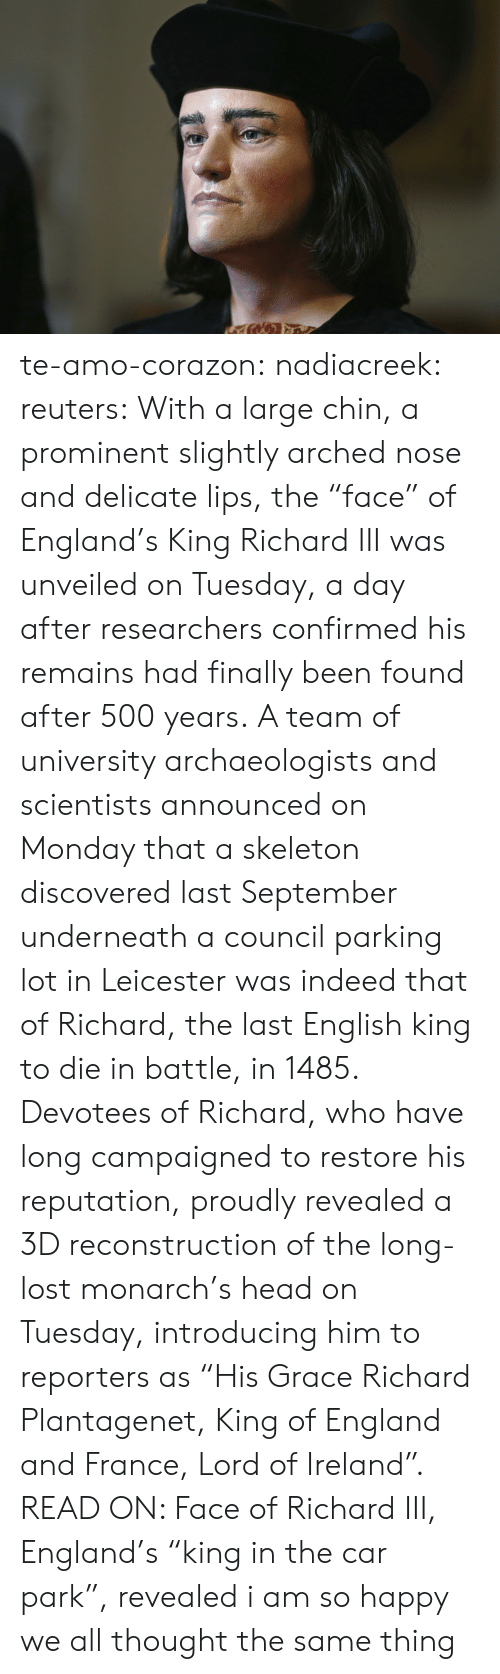 """England, Head, and Target: te-amo-corazon: nadiacreek:  reuters:  With a large chin, a prominent slightly arched nose and delicate lips, the """"face"""" of England's King Richard III was unveiled on Tuesday, a day after researchers confirmed his remains had finally been found after 500 years. A team of university archaeologists and scientists announced on Monday that a skeleton discovered last September underneath a council parking lot in Leicester was indeed that of Richard, the last English king to die in battle, in 1485. Devotees of Richard, who have long campaigned to restore his reputation, proudly revealed a 3D reconstruction of the long-lost monarch's head on Tuesday, introducing him to reporters as """"His Grace Richard Plantagenet, King of England and France, Lord of Ireland"""". READ ON: Face of Richard III, England's """"king in the car park"""", revealed     i am so happy we all thought the same thing"""